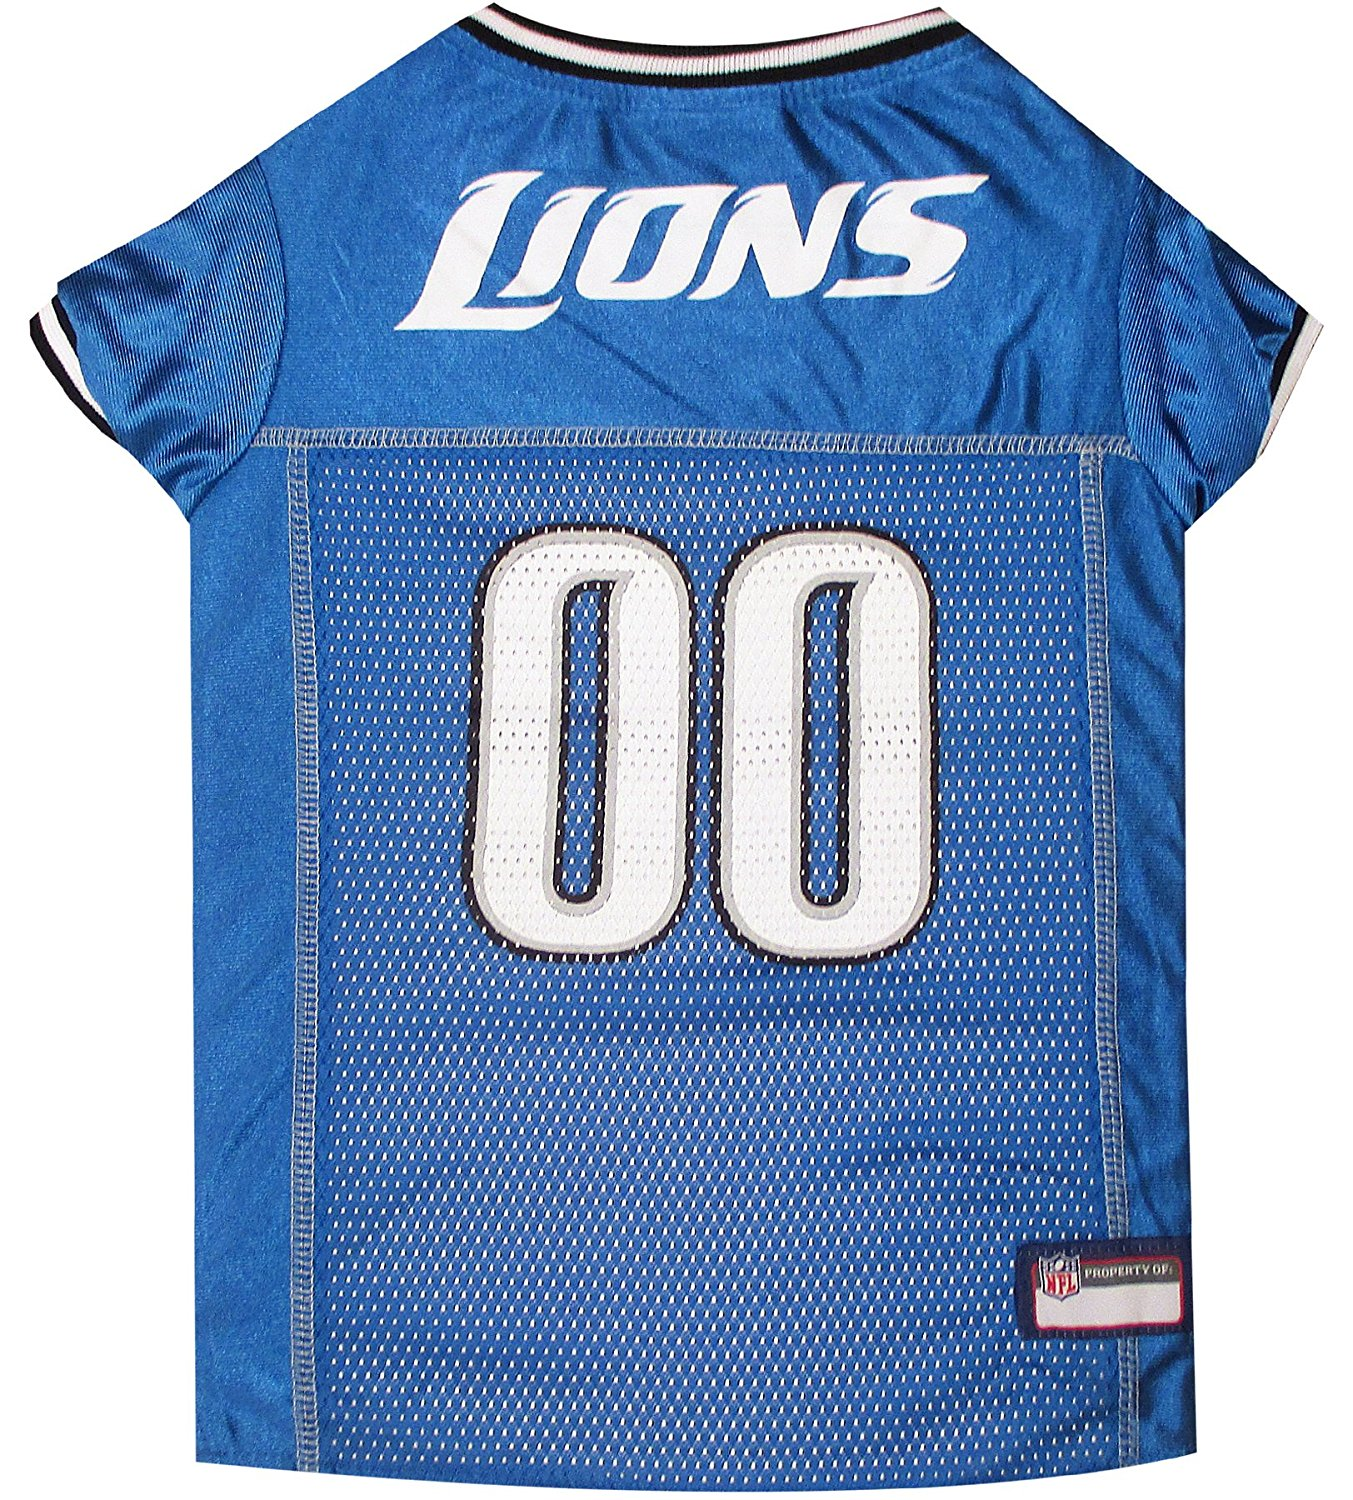 0ede1145db5 NFL PET JERSEY Football Licensed Dog Jersey 32 NFL Teams Available Comes in  6 Sizes Football Pet Jersey Sports Mesh Jersey Dog Jersey Outfit (Detroit  Lions)